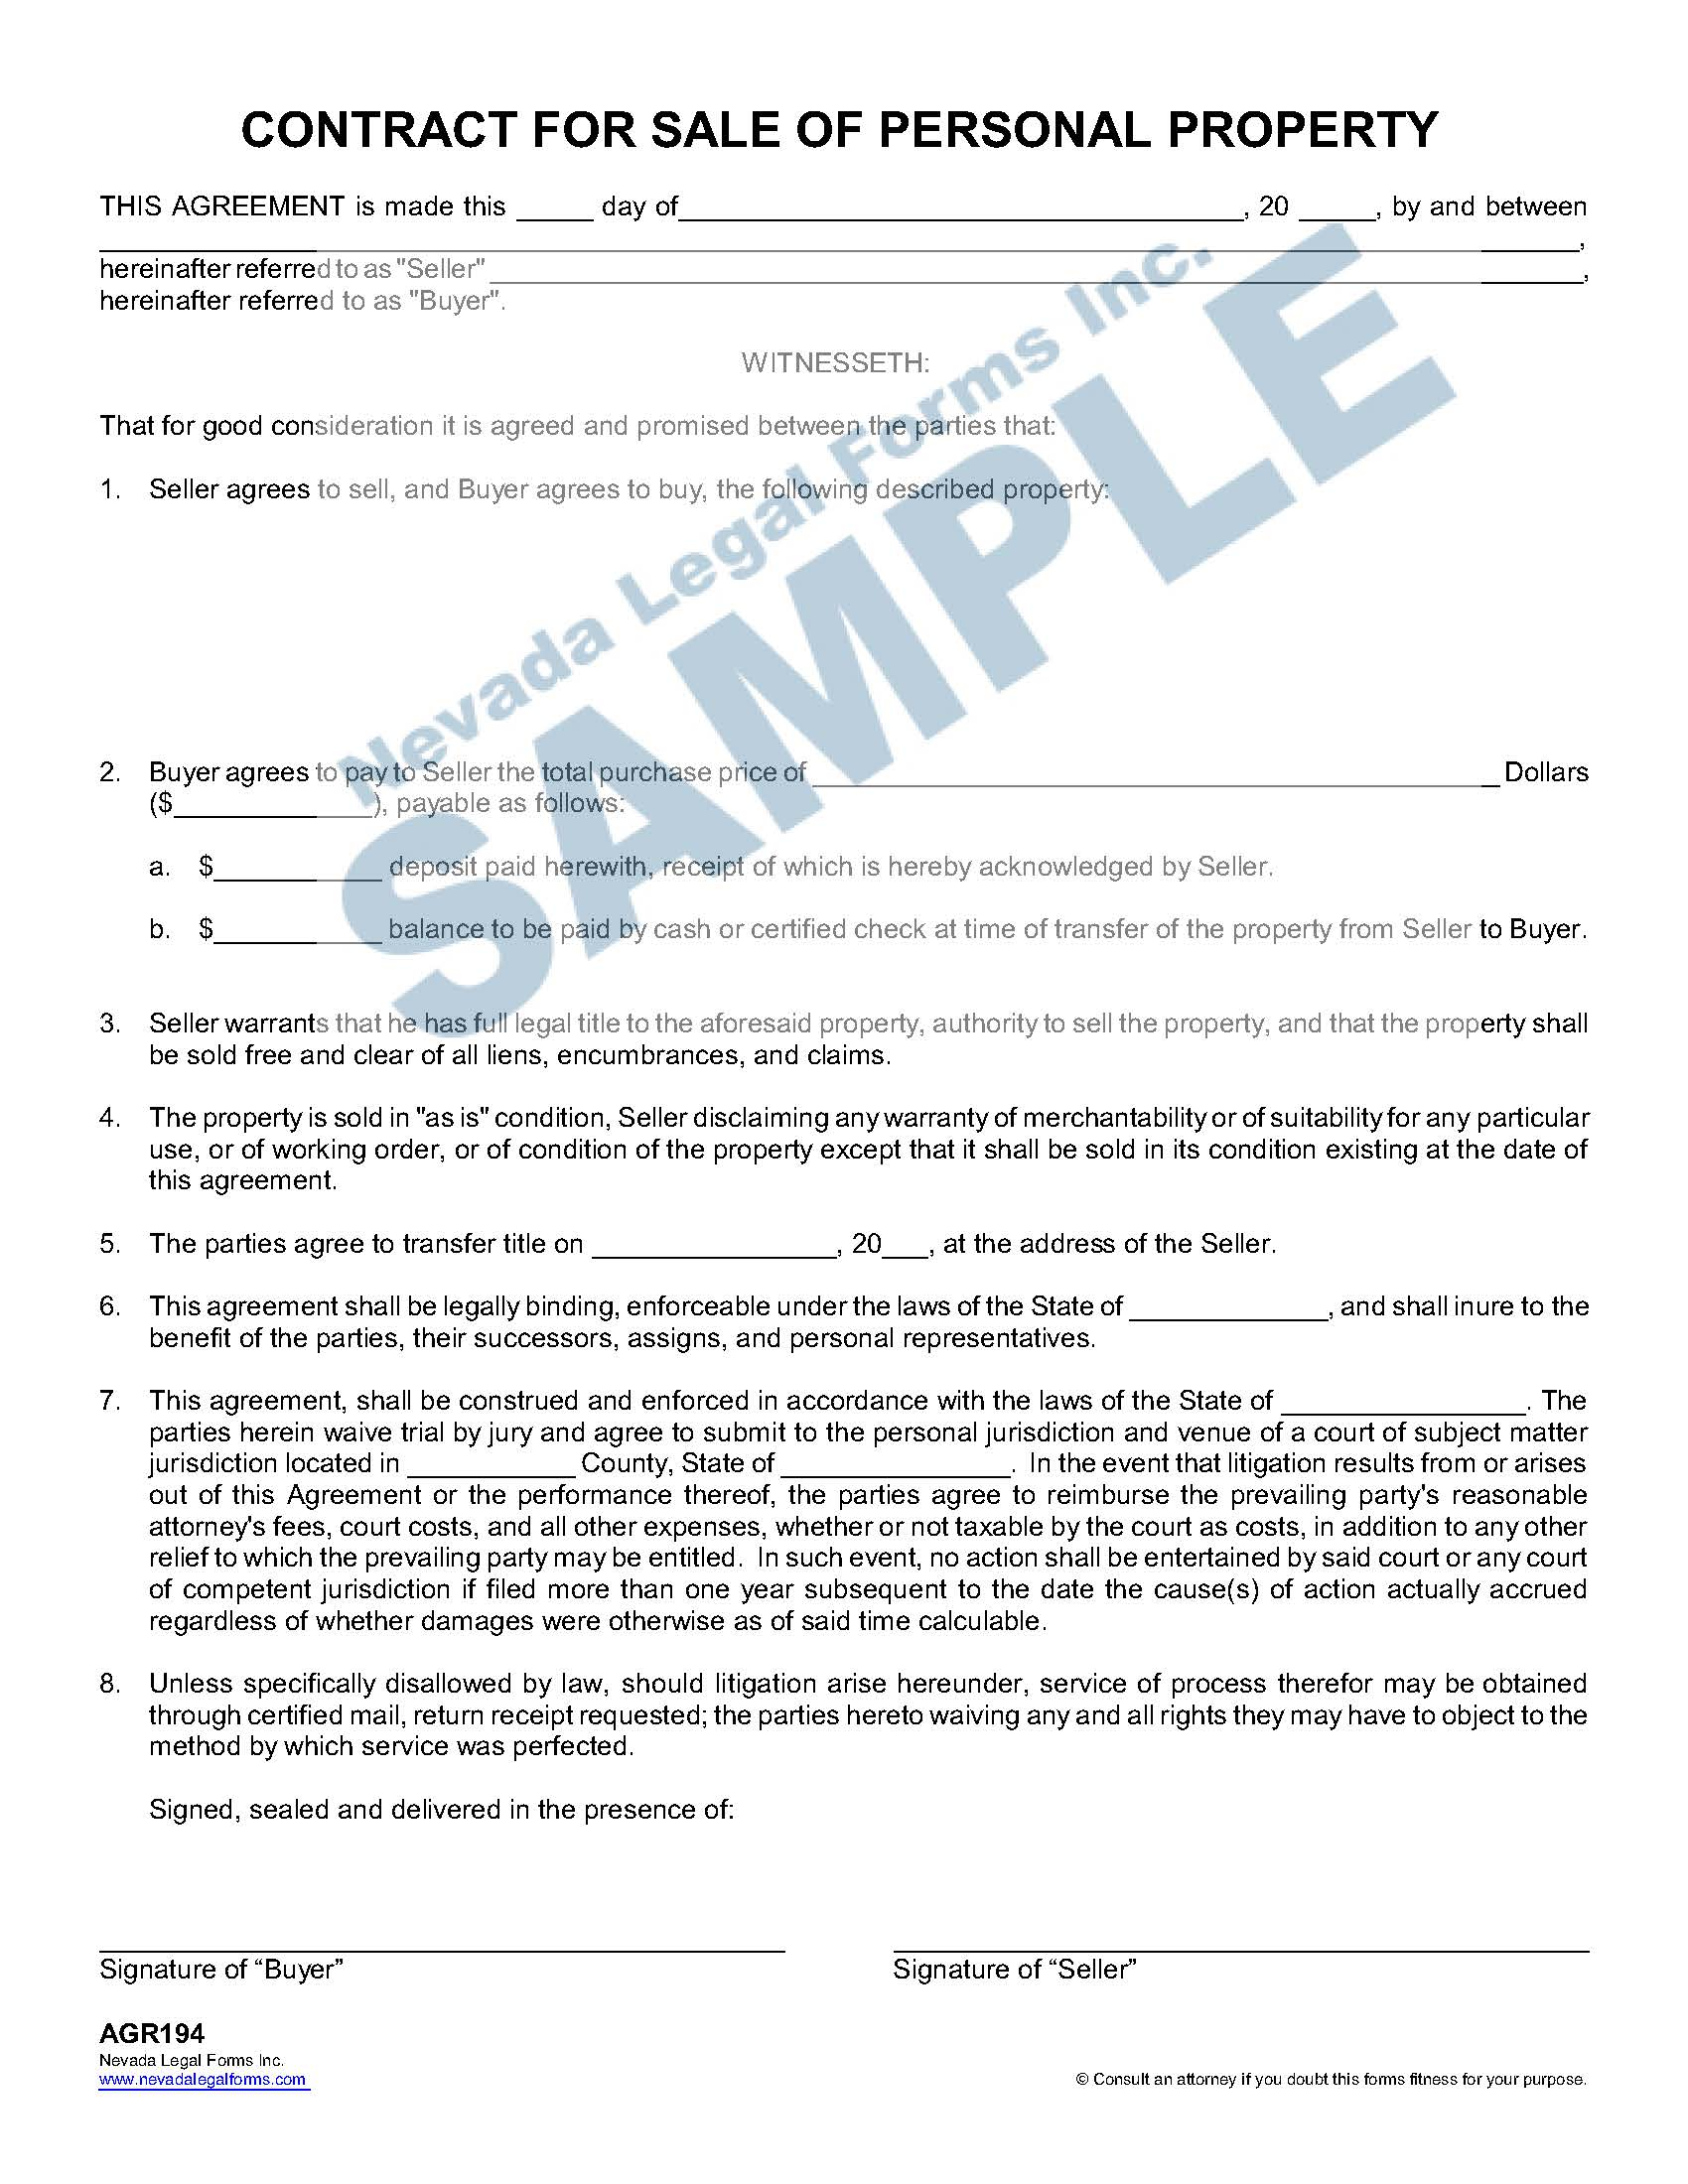 Contract For Sale Of Personal Property